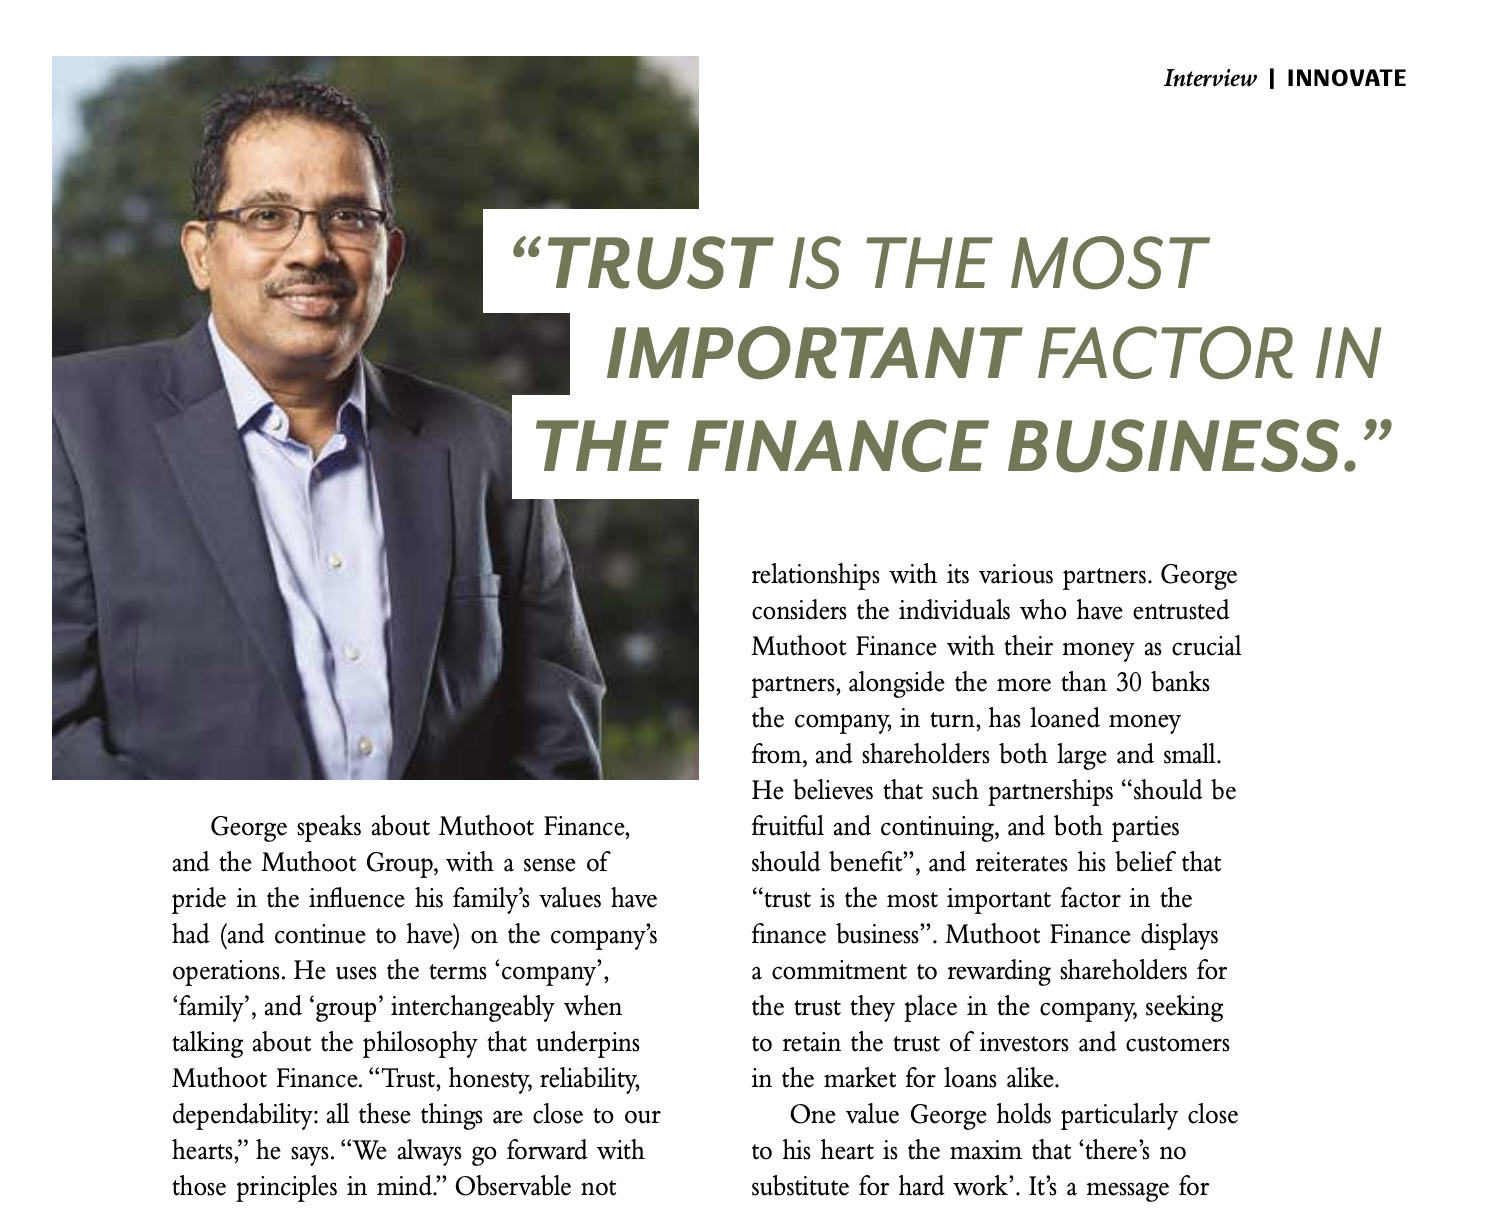 George Alexander, Managing Director of Muthoot Finance